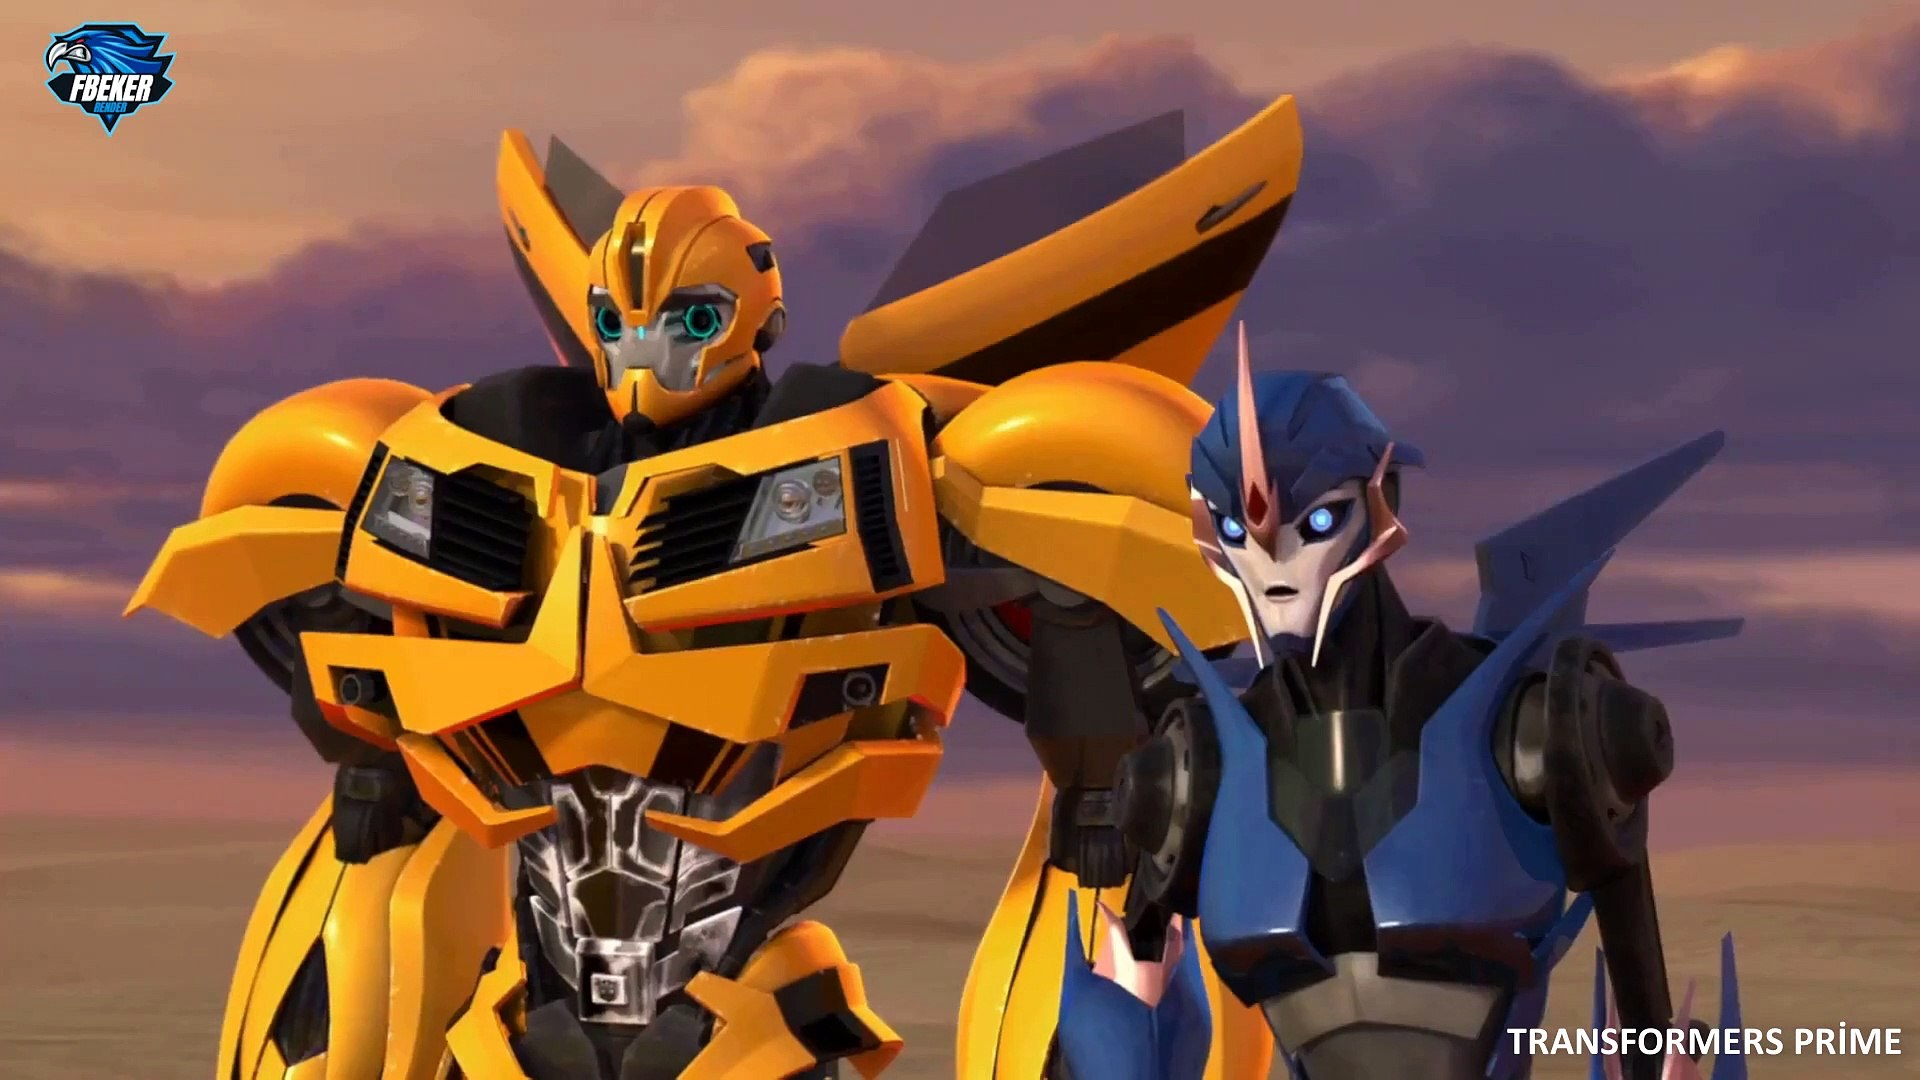 Transformers Prime 8.Bölüm Full Hd